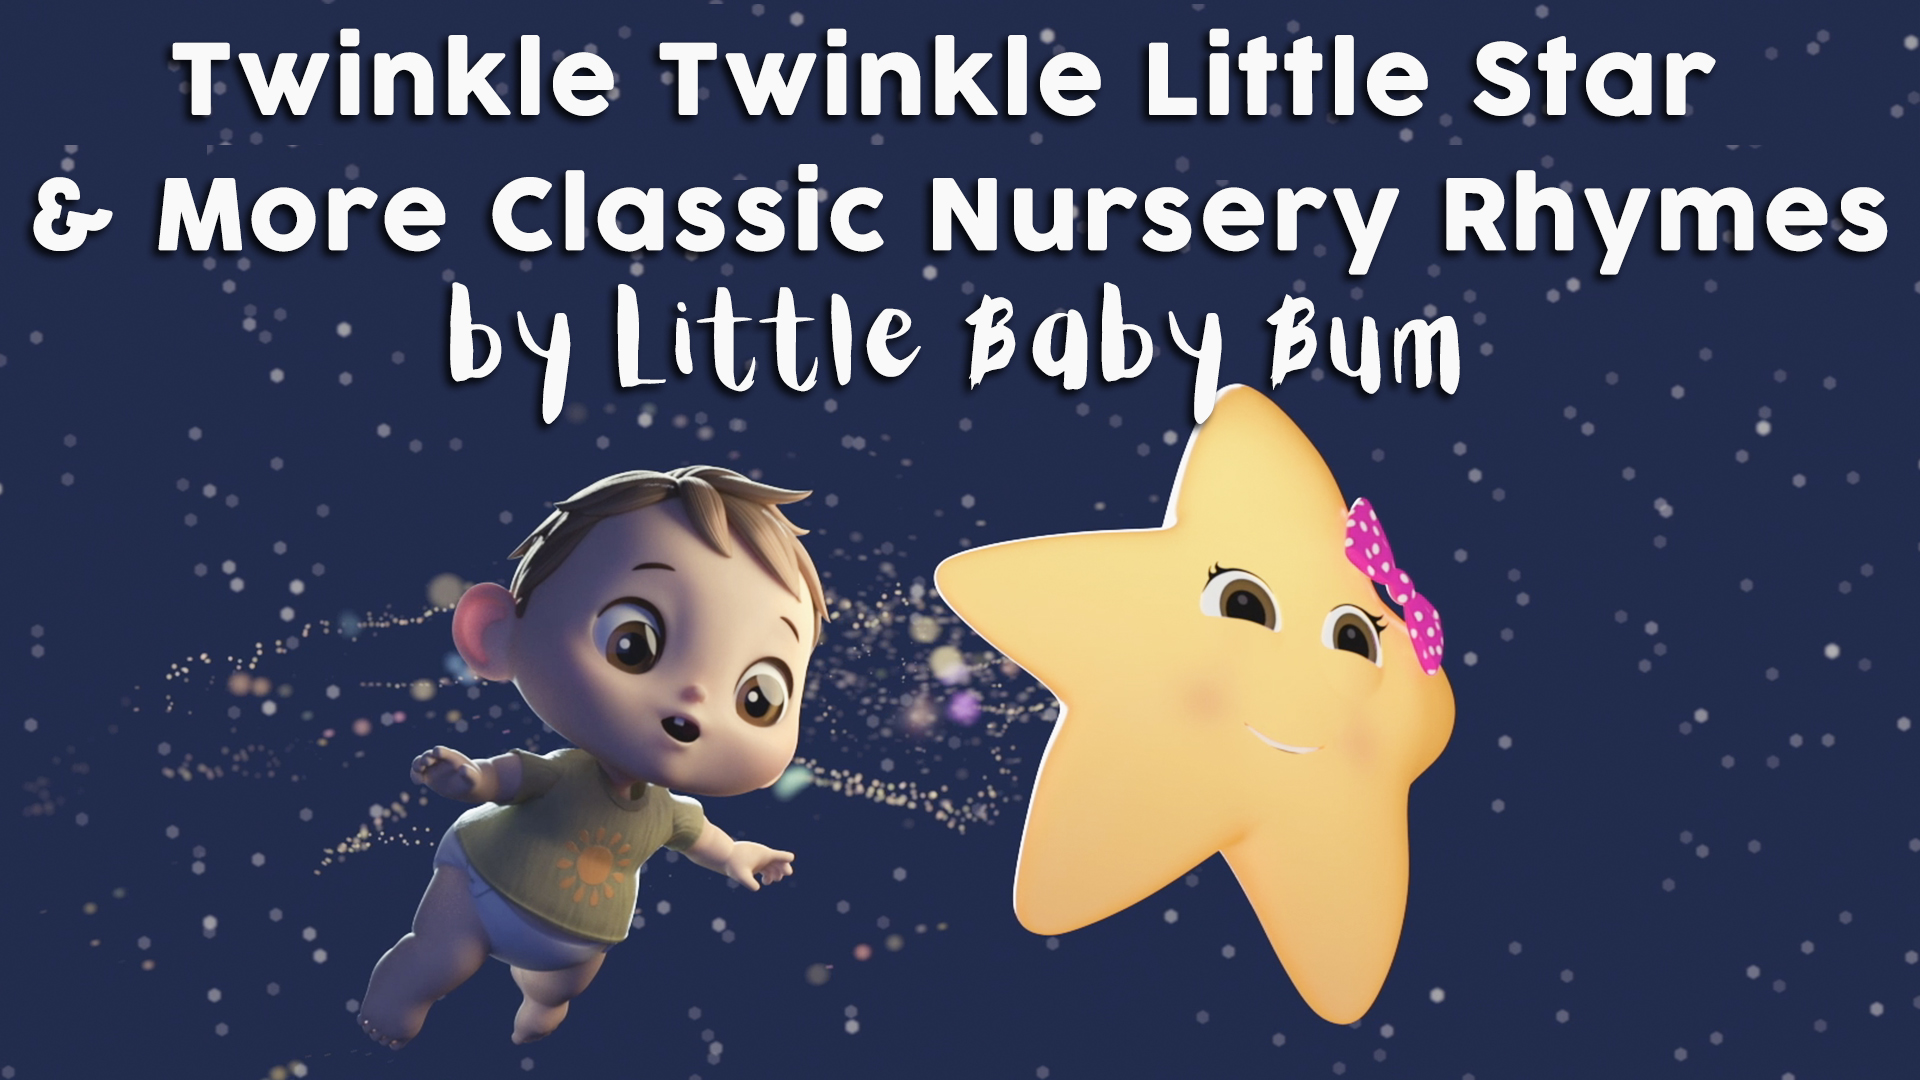 Amazon Com Twinkle Twinkle Little Star More Classic Nursery Rhymes By Little Baby Bum Cannis Holder Derek Holder